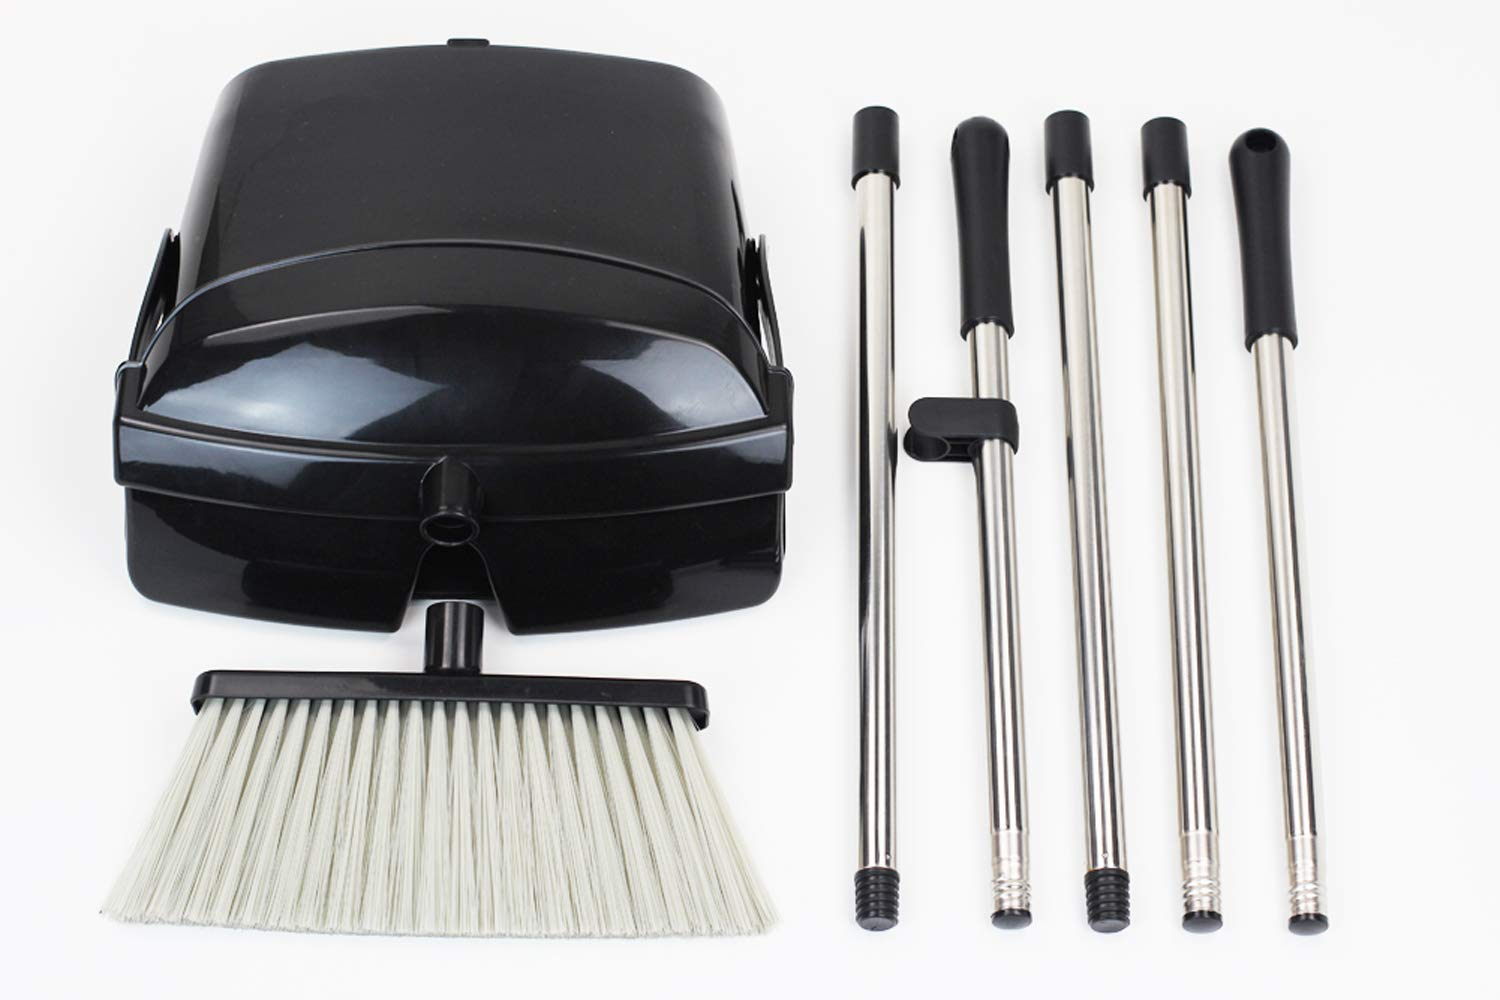 Broom and Dustpan Set, Commercial Long Handle Sweep Set and Lobby Broom,Upright Grips Sweep Set with Broom for Home, Kitchen, Room, Office and Lobby Floor Dust Pan & Broom Combo, Black